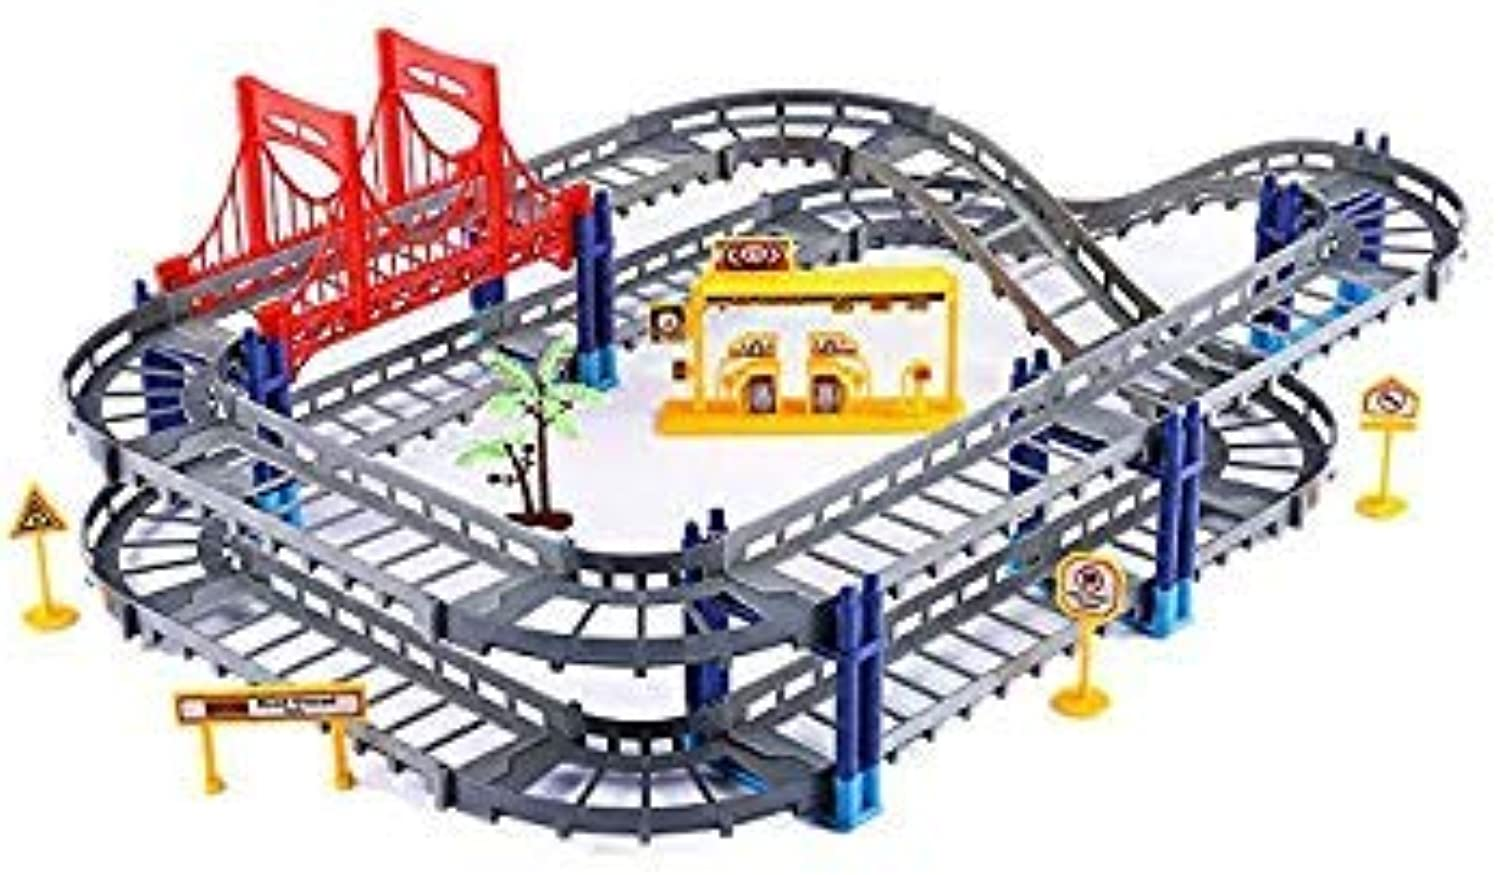 45pcs Electric Racing Car Kids Train Track Models Toy Baby Railway Track Racing Road Transportation Building Slot Sets 2 colors Grey with 1 car